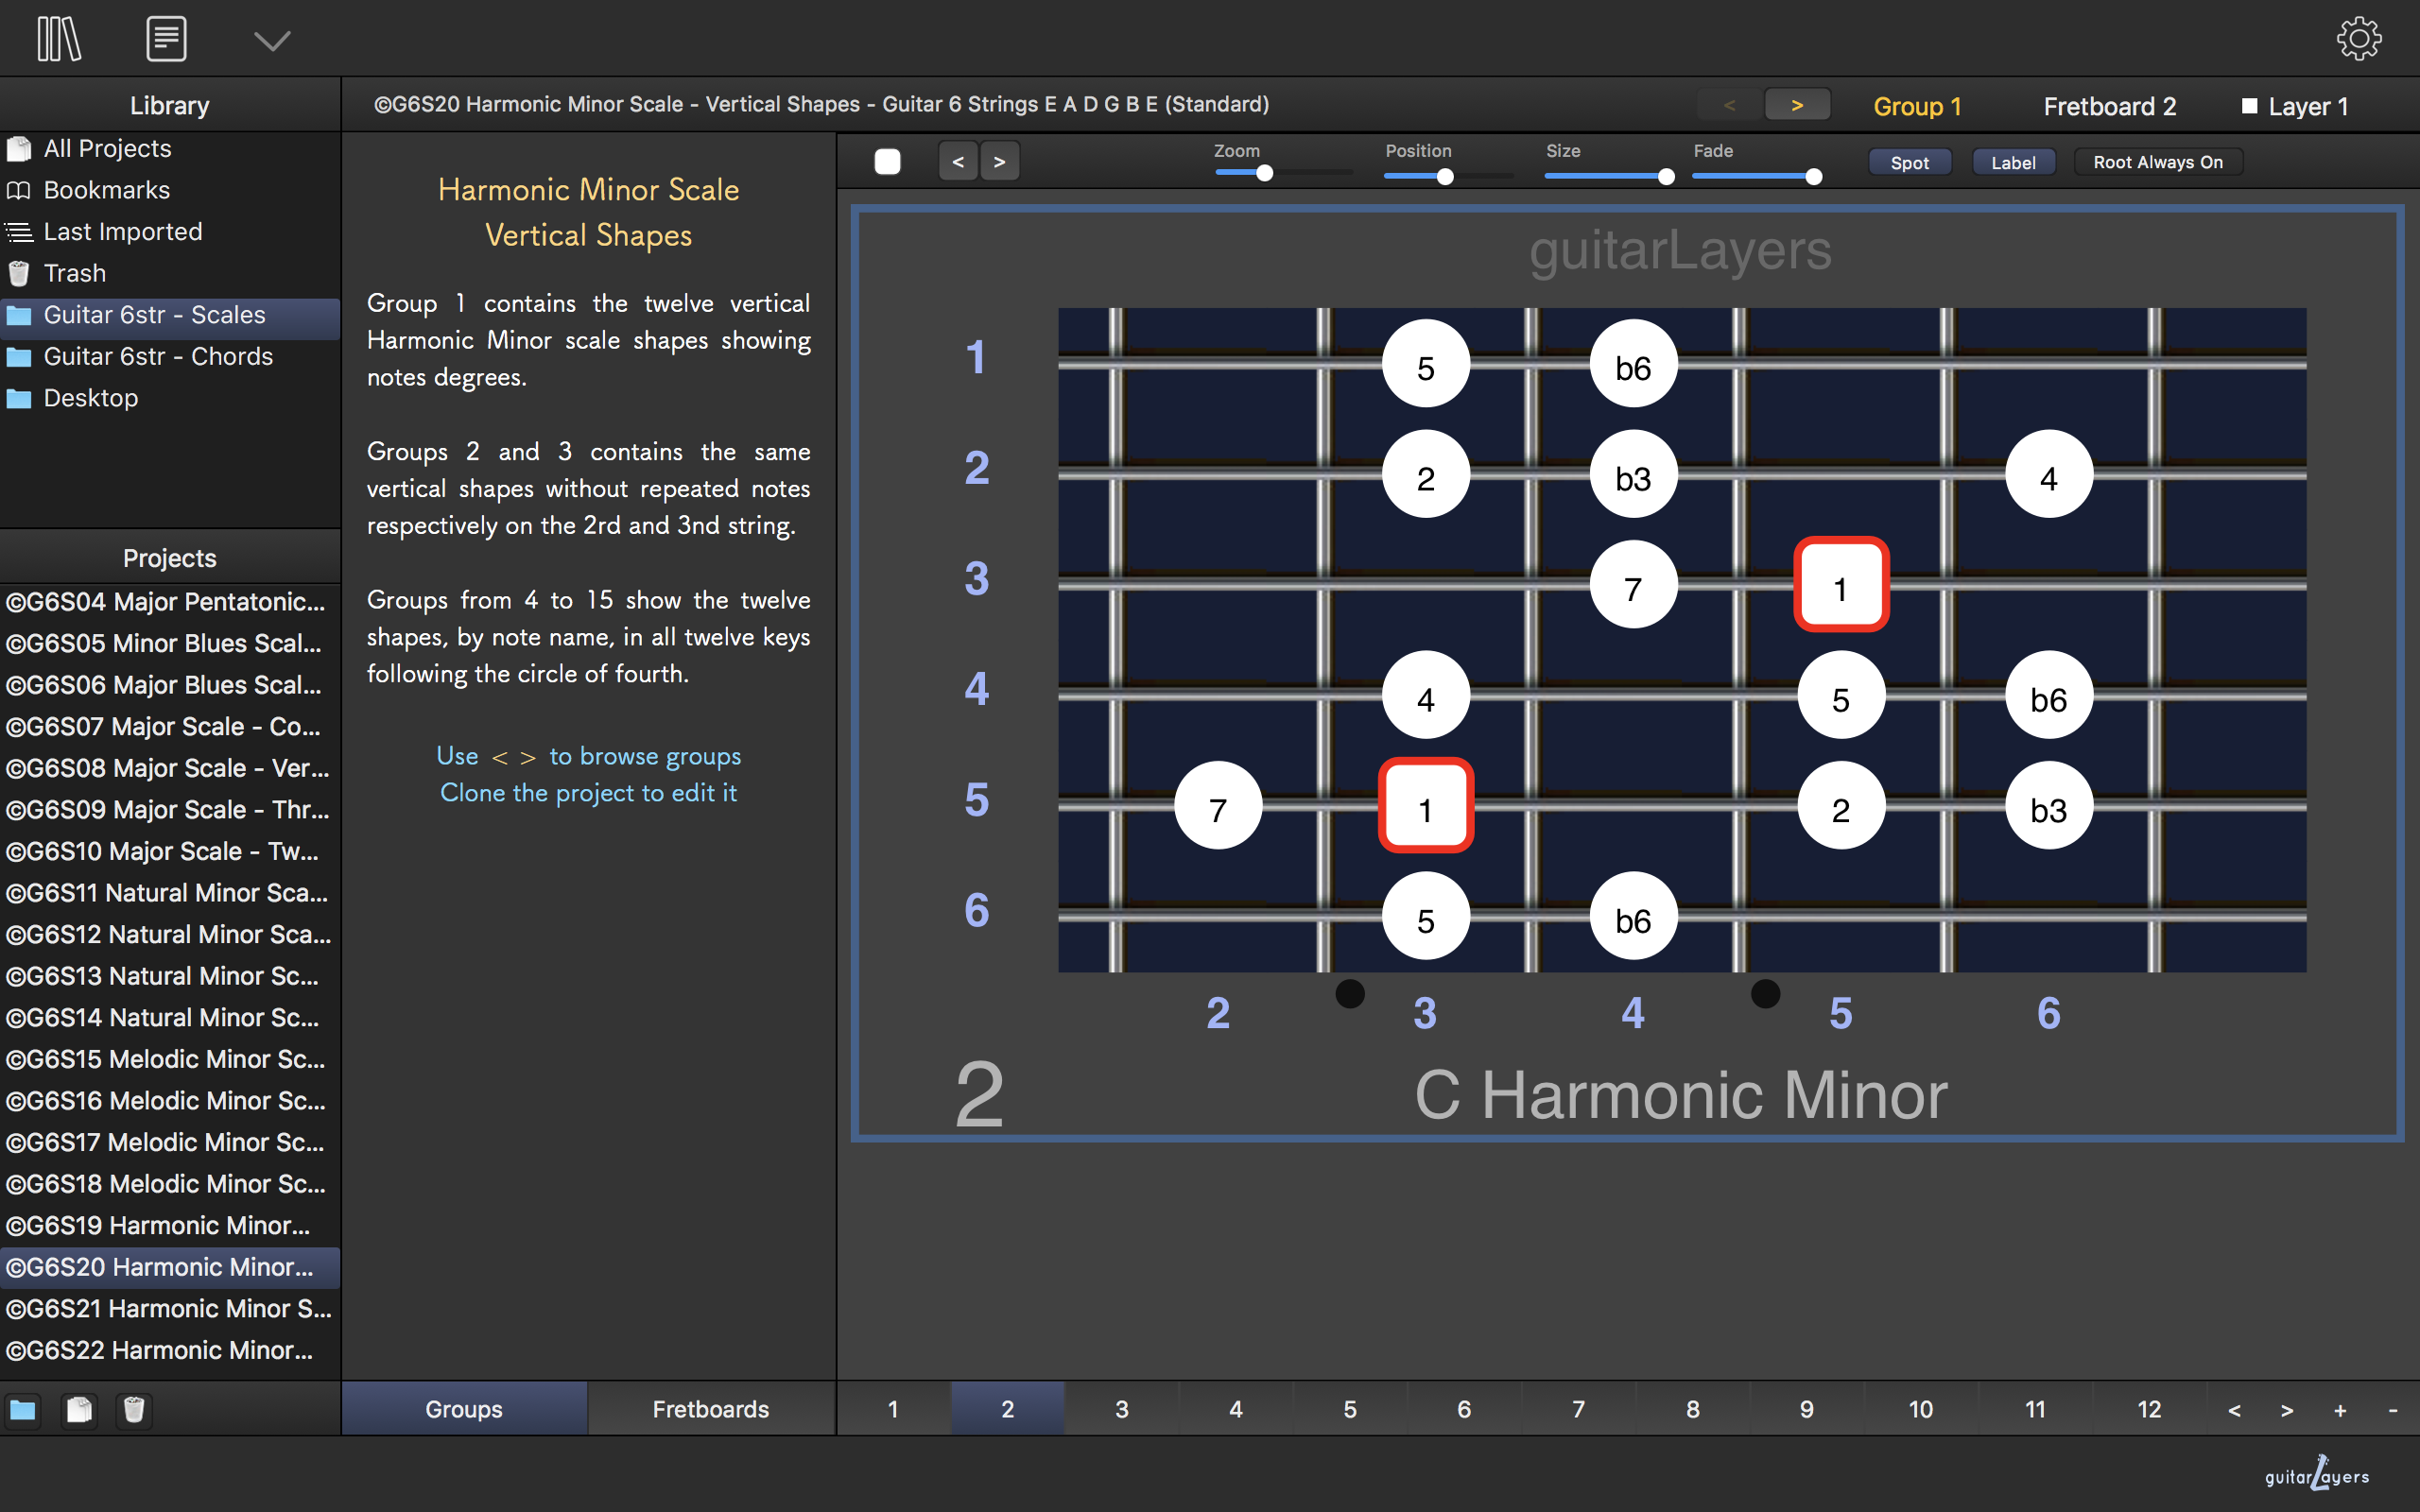 guitarLayers - guitar learning software for scales, chords and arpeggios shapes and diagrams